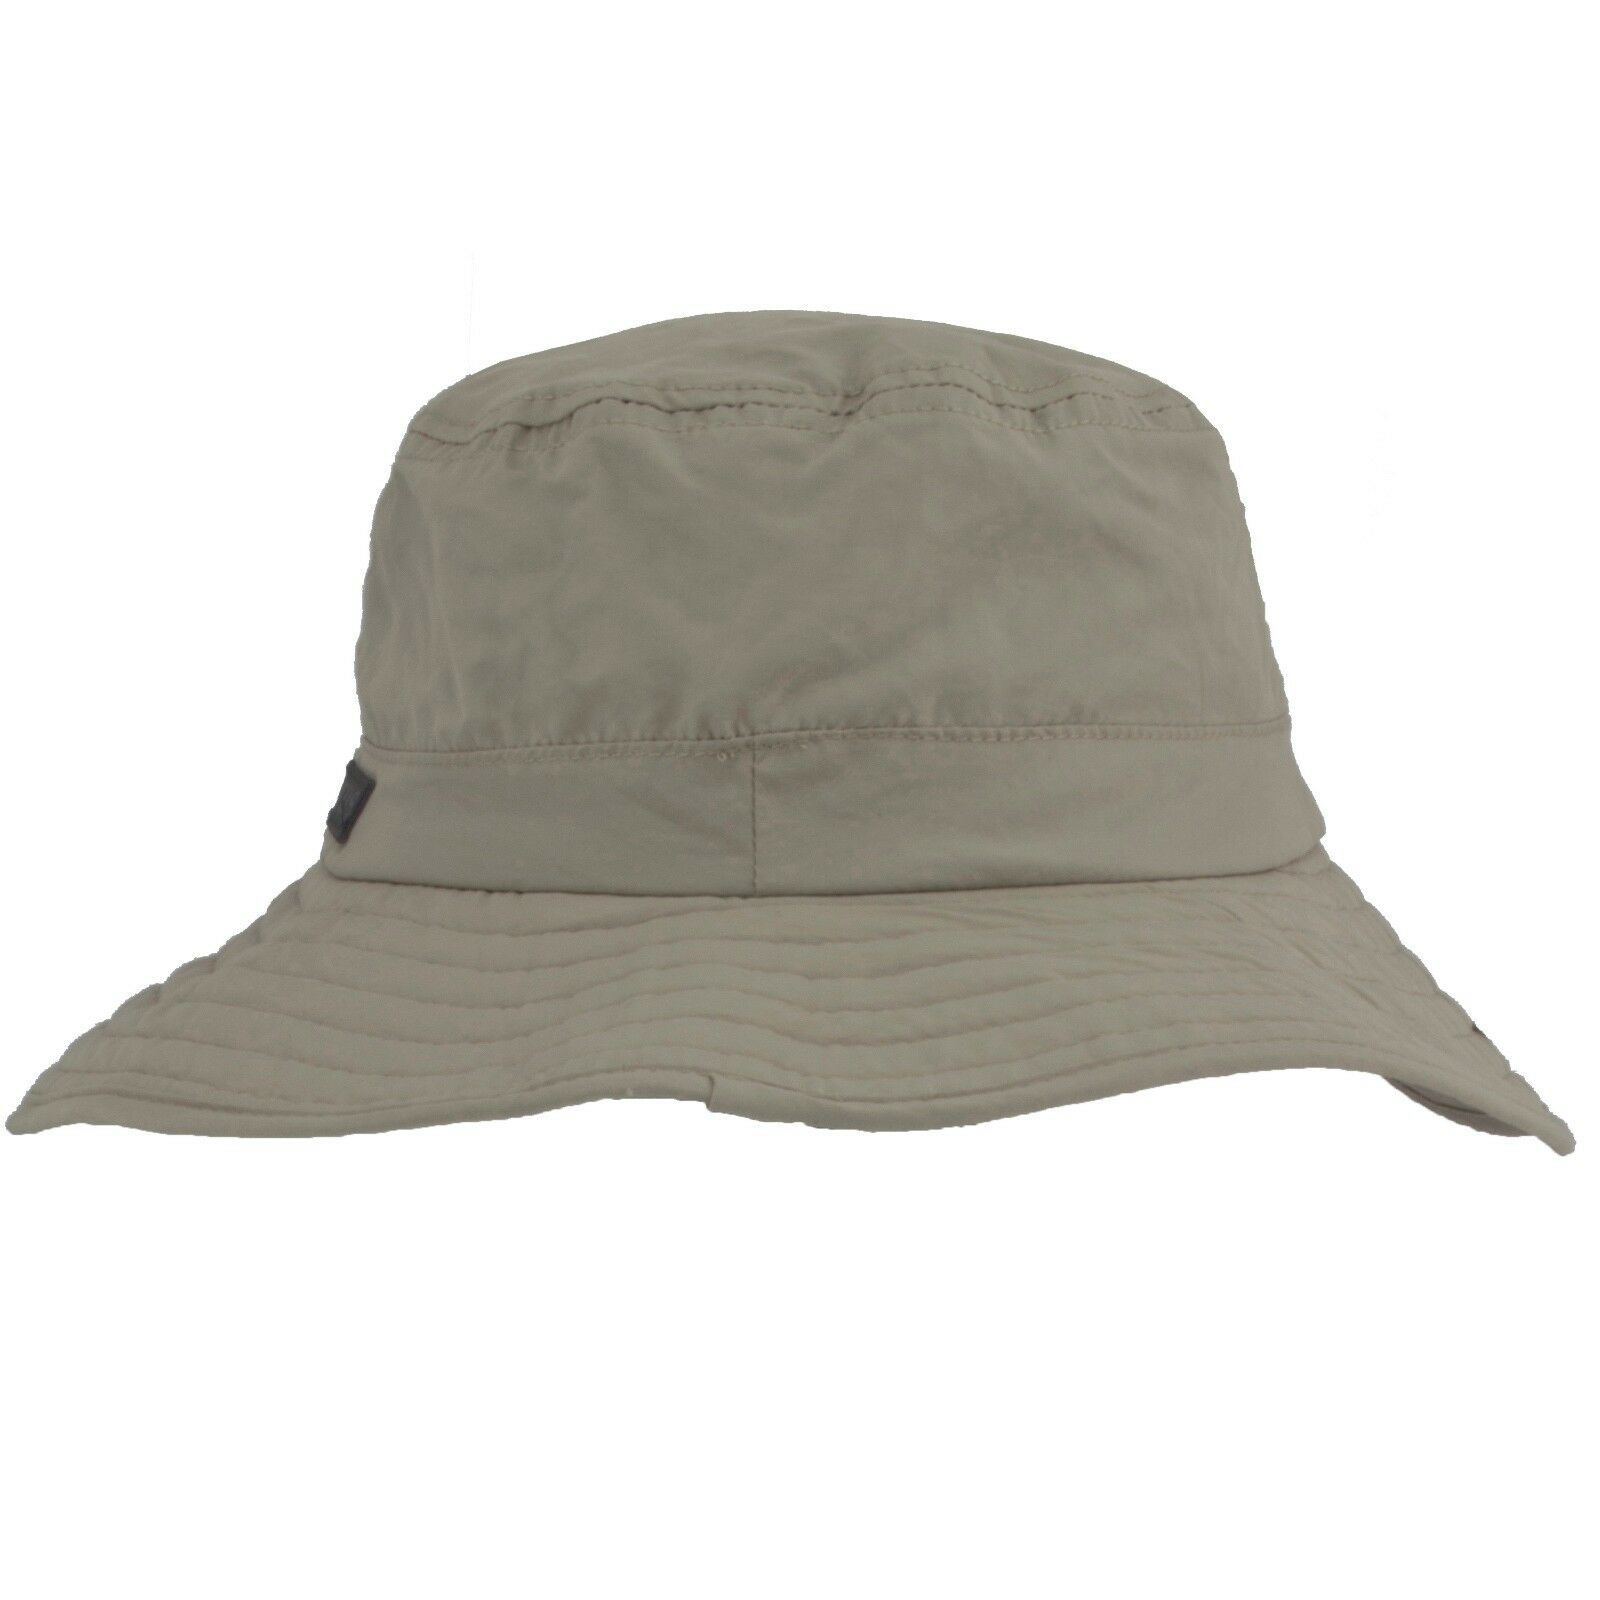 Primary image for SEIRUS 3802 NYLON FLOPPY SUN HAT SUMMER FOLD UP BRIM BOONIE CAP LID L/XL